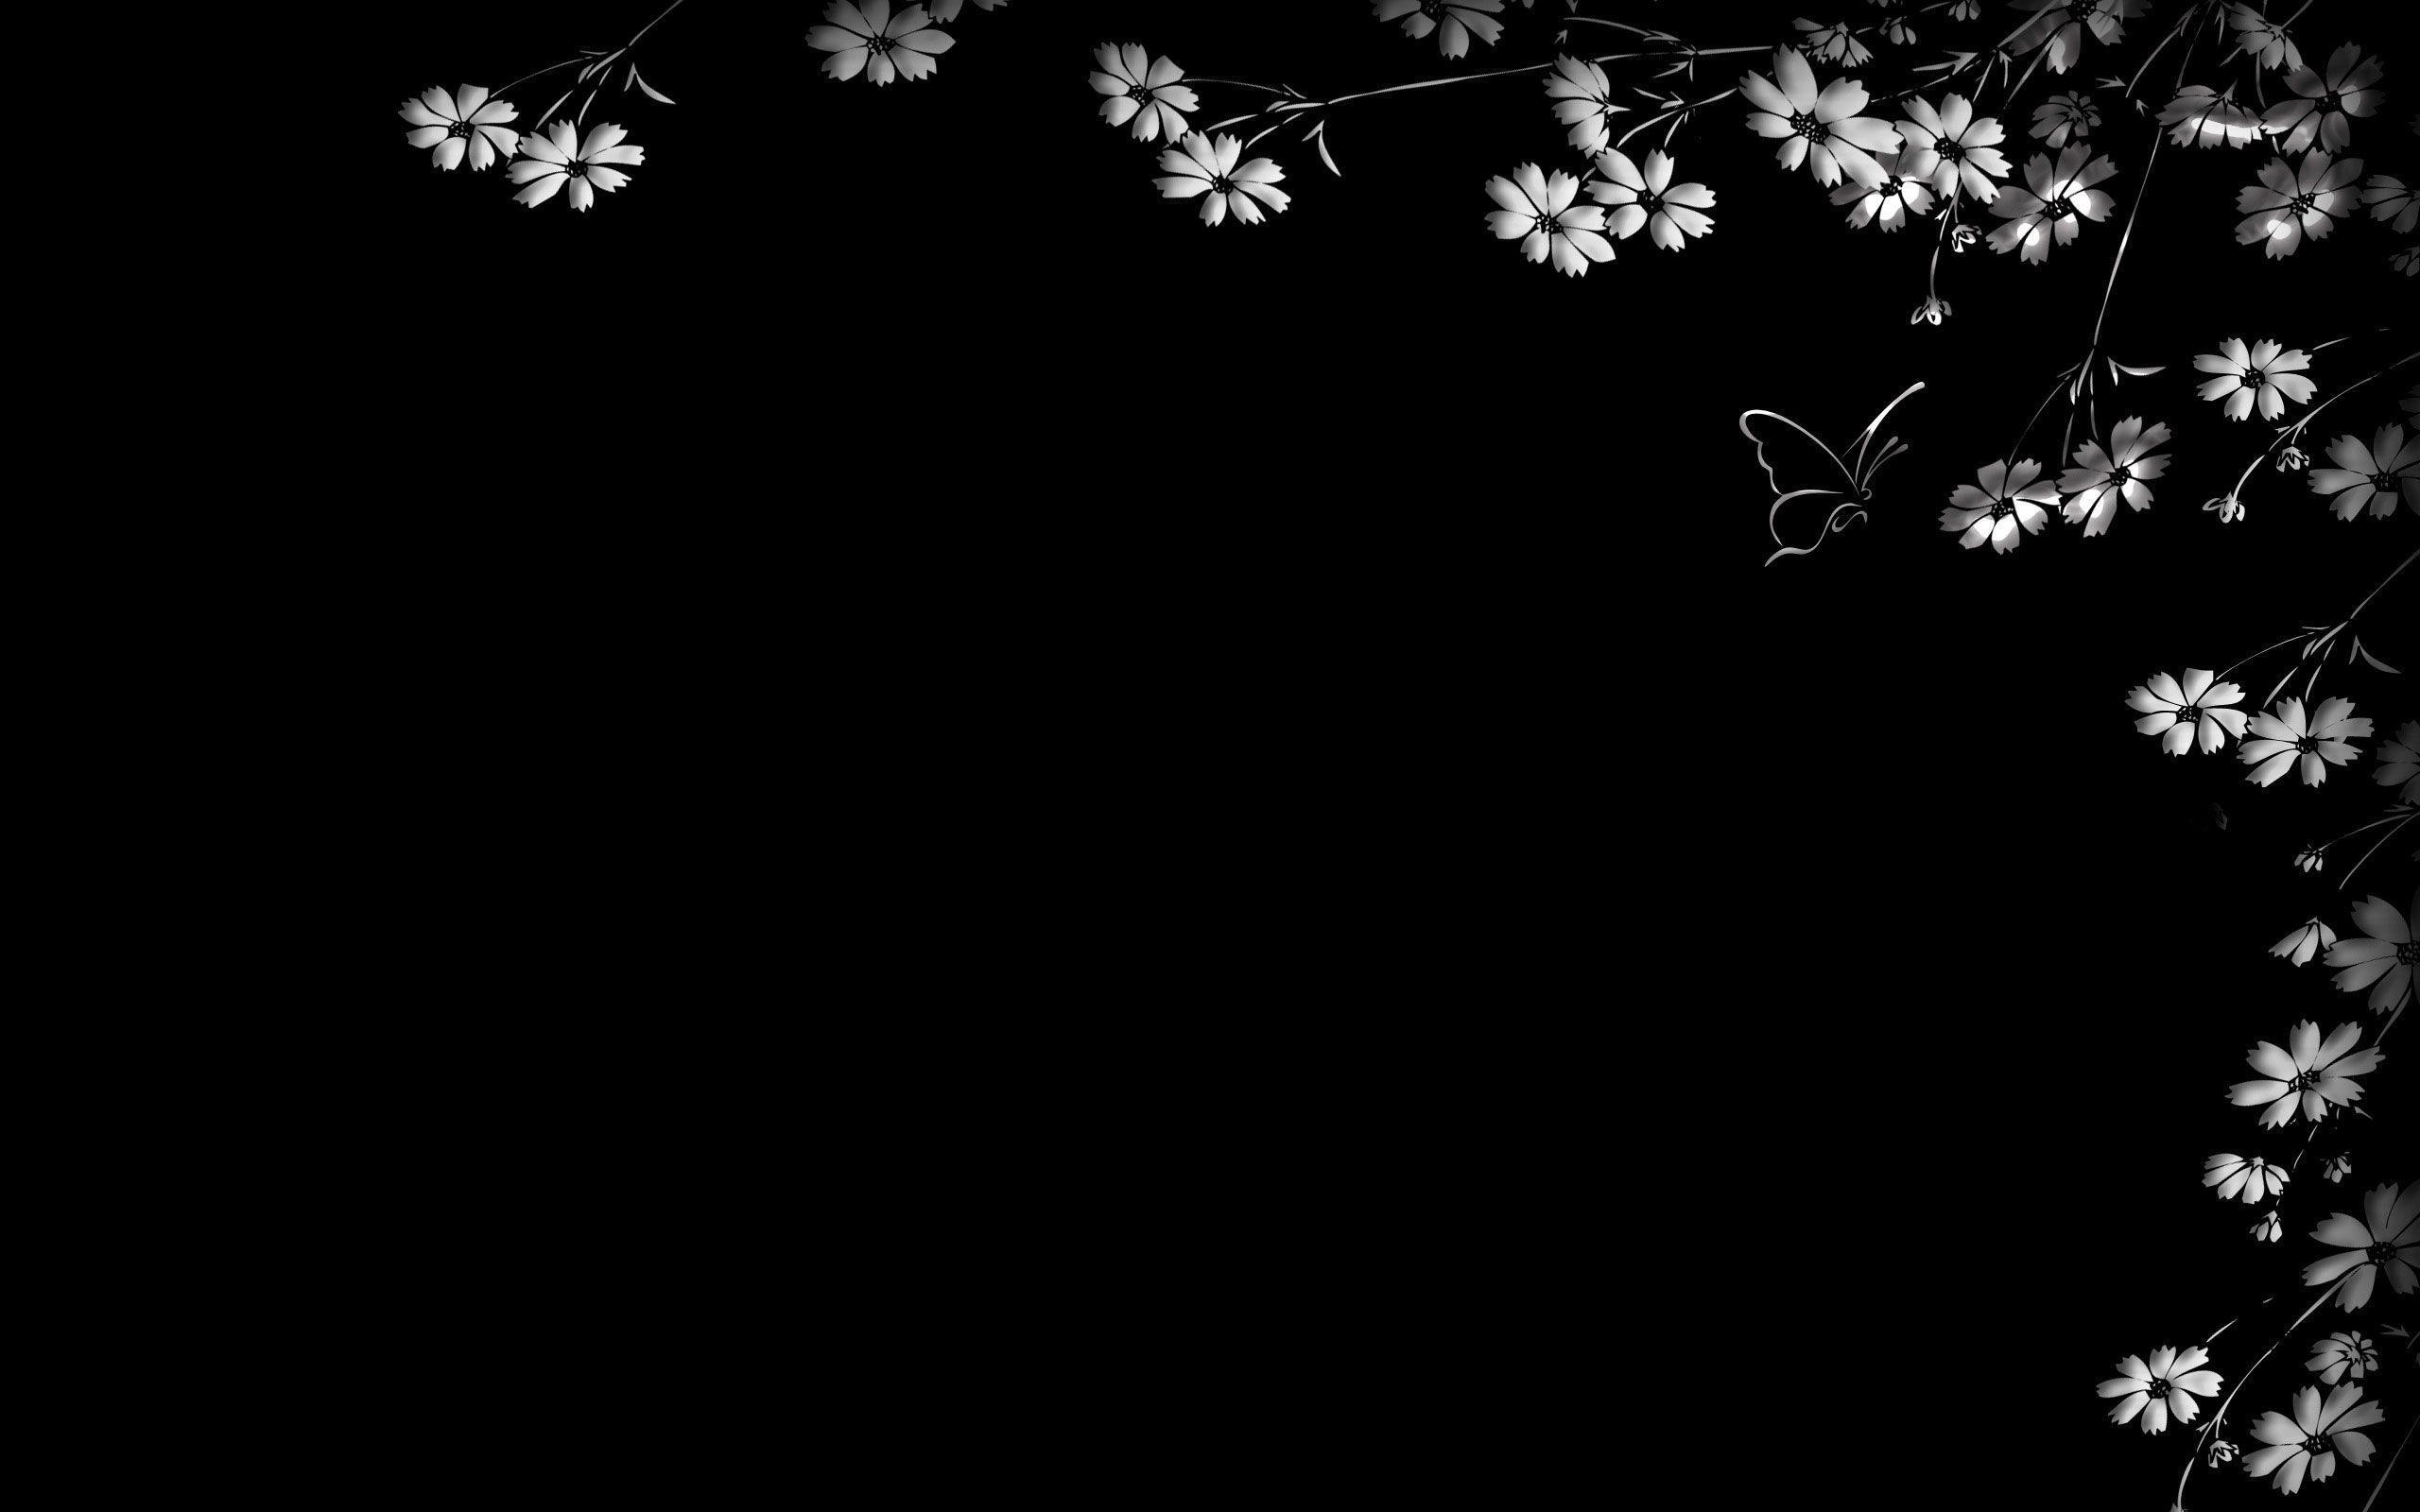 Black And White Desktop Backgrounds Wallpaper Cave